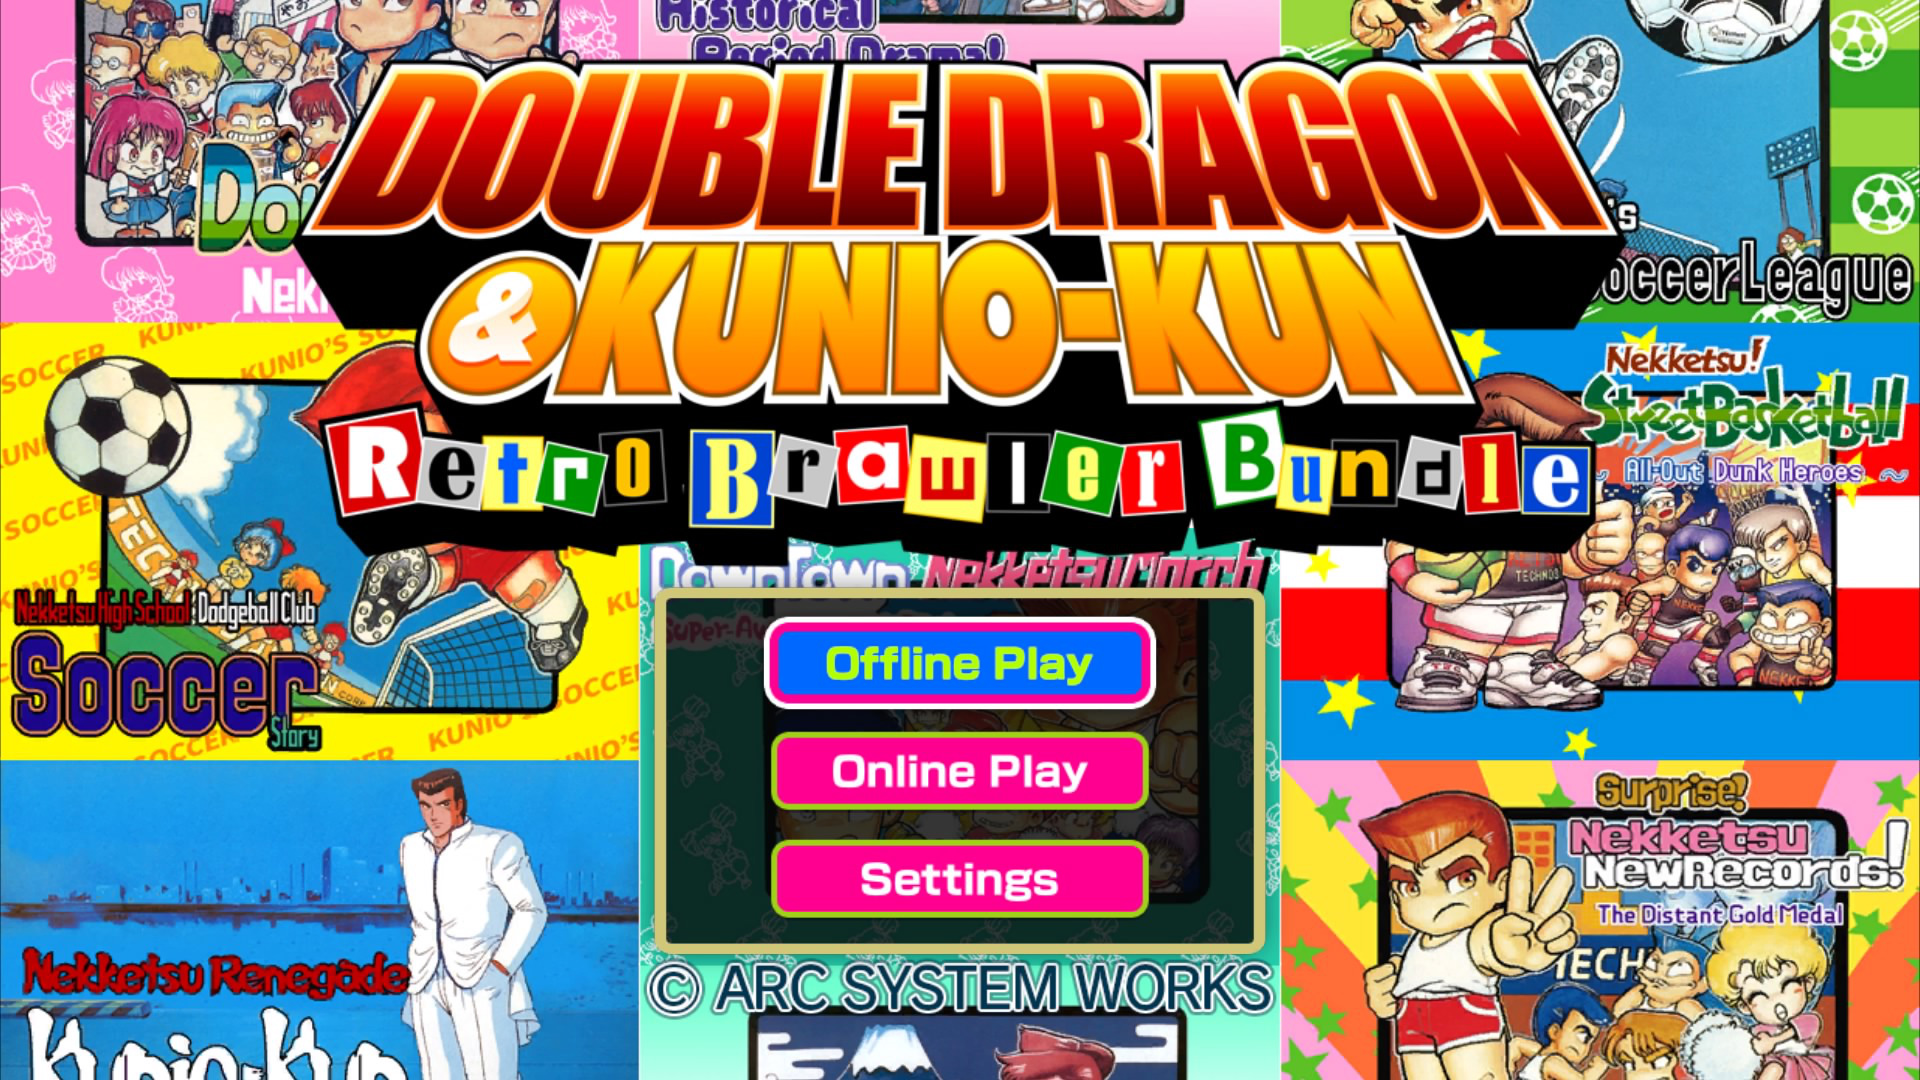 Double Dragon And Kunio Kun Retro Brawler Bundle On Ps4 Official Playstation Store Us